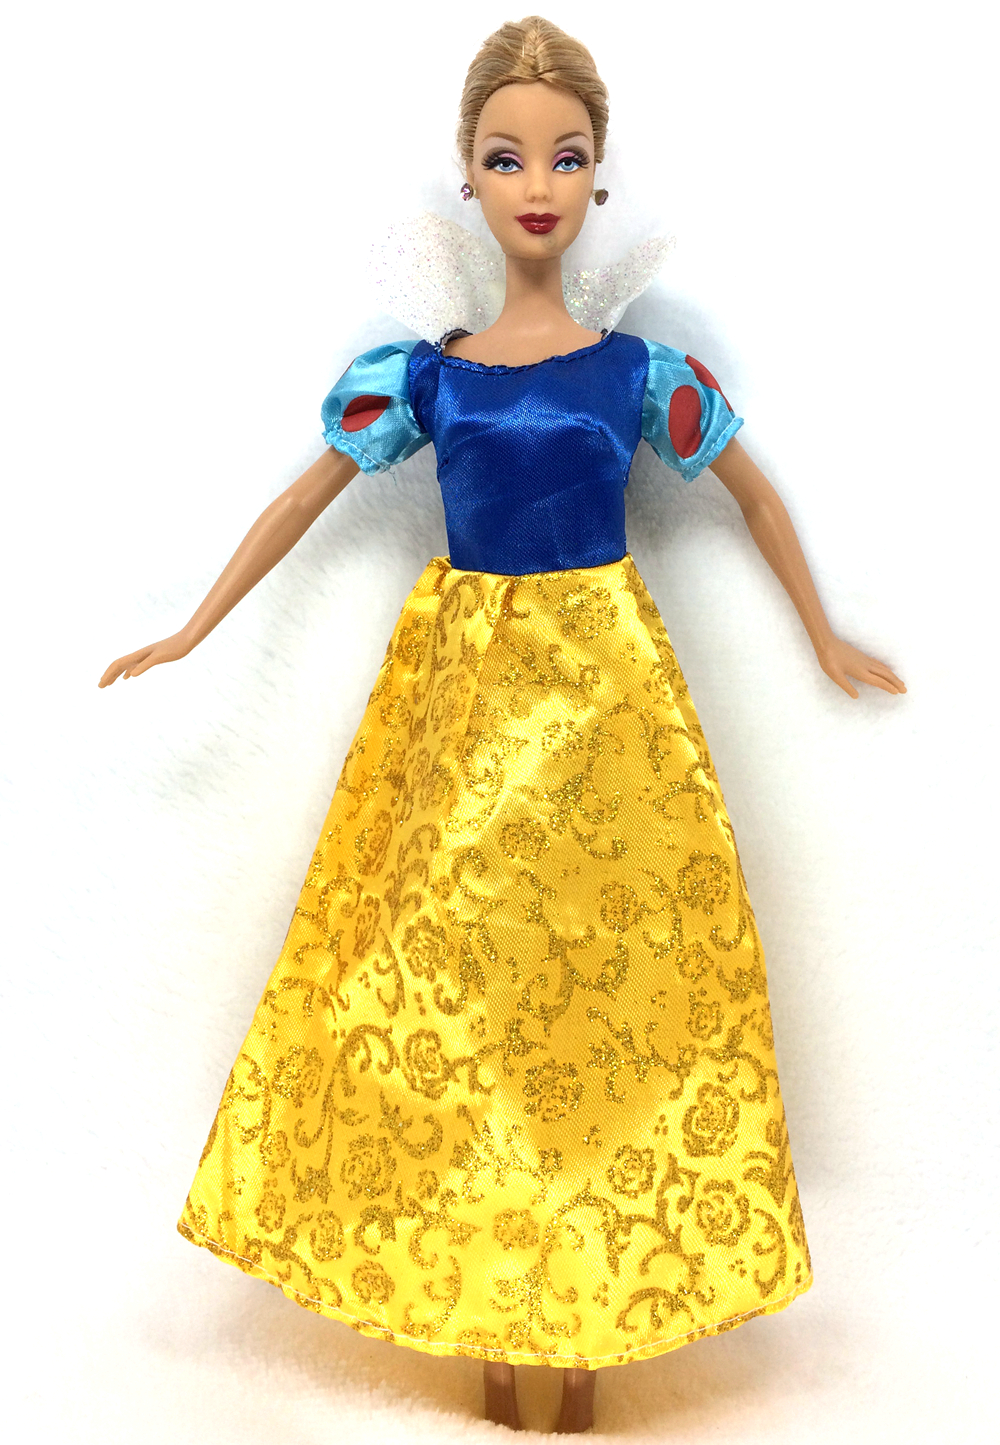 NK One Set Princess Doll Dress Similar Fairy Tale Snow white Wedding Dress Gown Party Outfit For Barbie Doll Best Girls' Gift d0372 best girl gift 50cm kurhn princess doll with large wedding dress gift luxury dress set handemade romantic bride 06